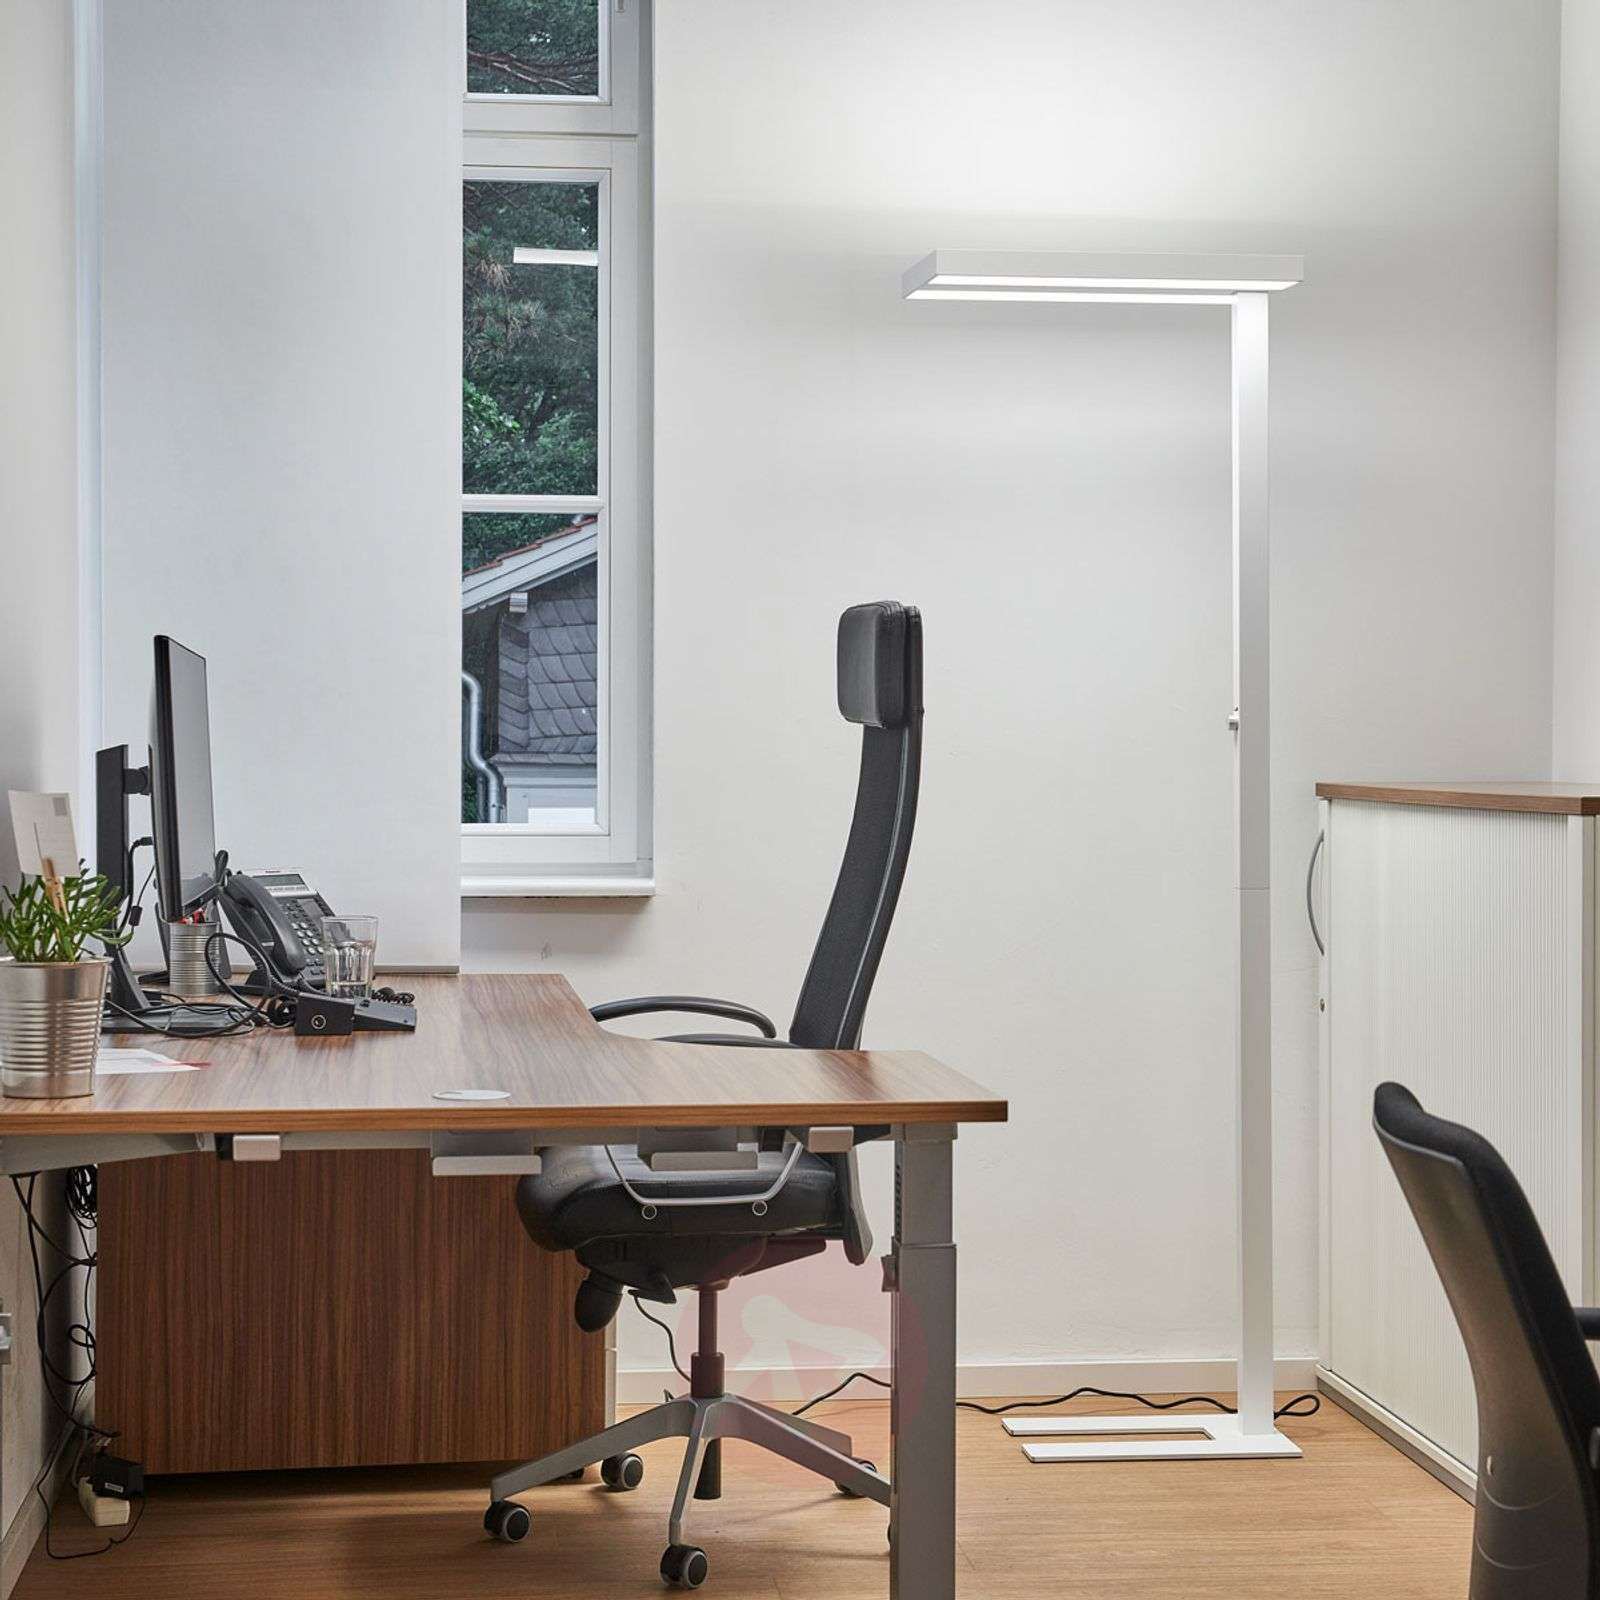 Logan lampada da terra LED office, dimmer 4000K-9968004-02